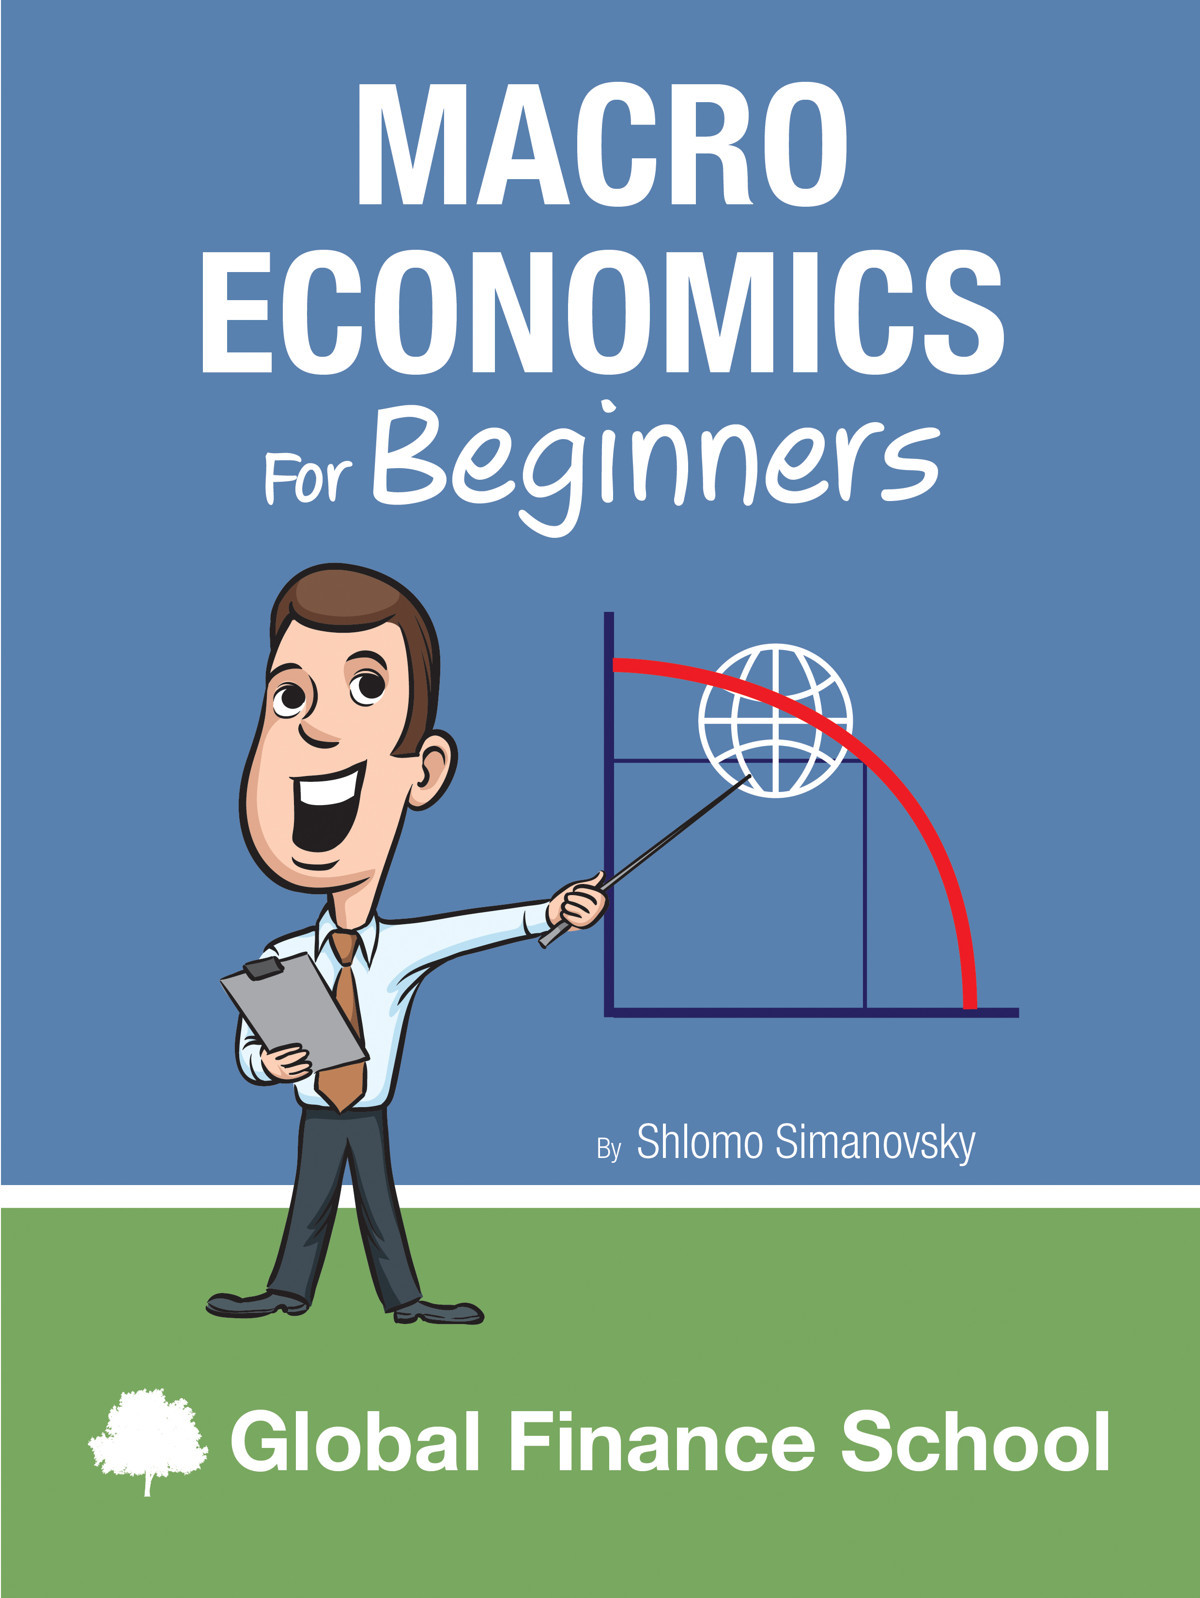 Macroeconomics for Beginners